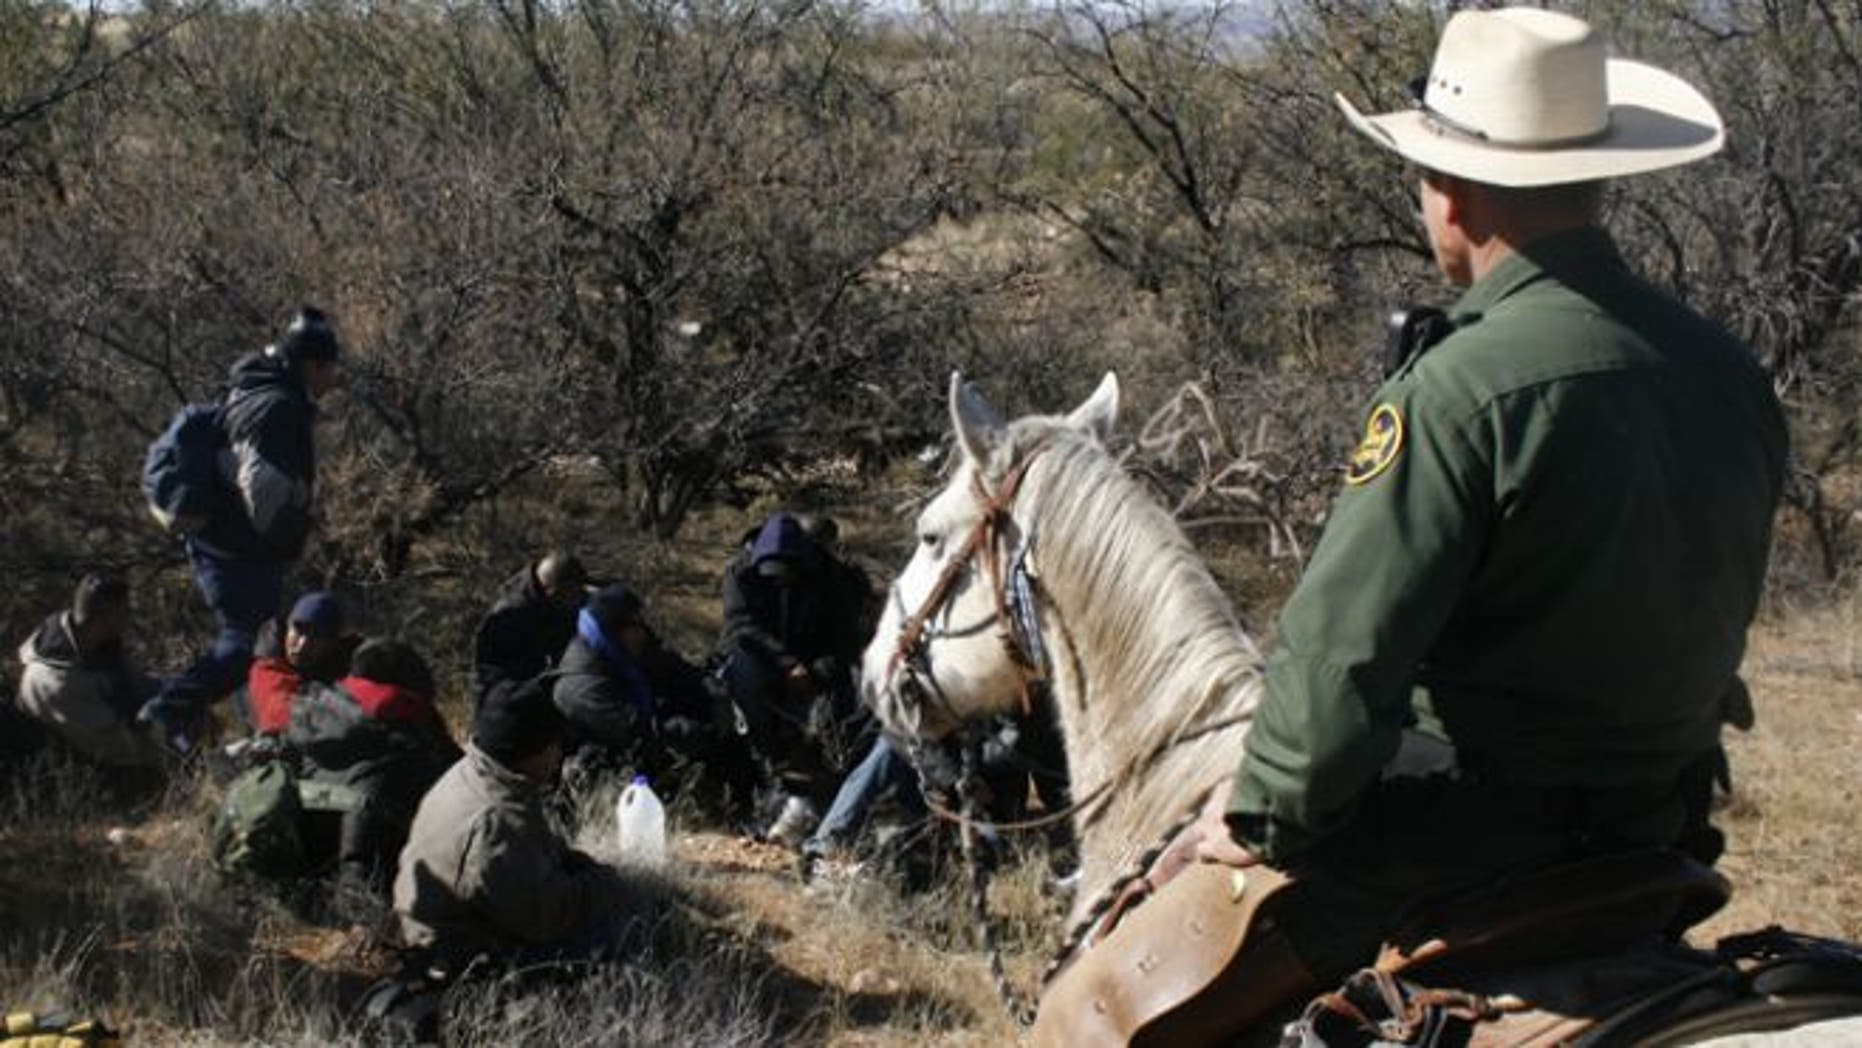 FILE: Jan. 9, 2008: A U.S. Border Patrol agent watches over a group of immigrants arrested after crossing illegally from Mexico through the Altar Valley in Arizona.